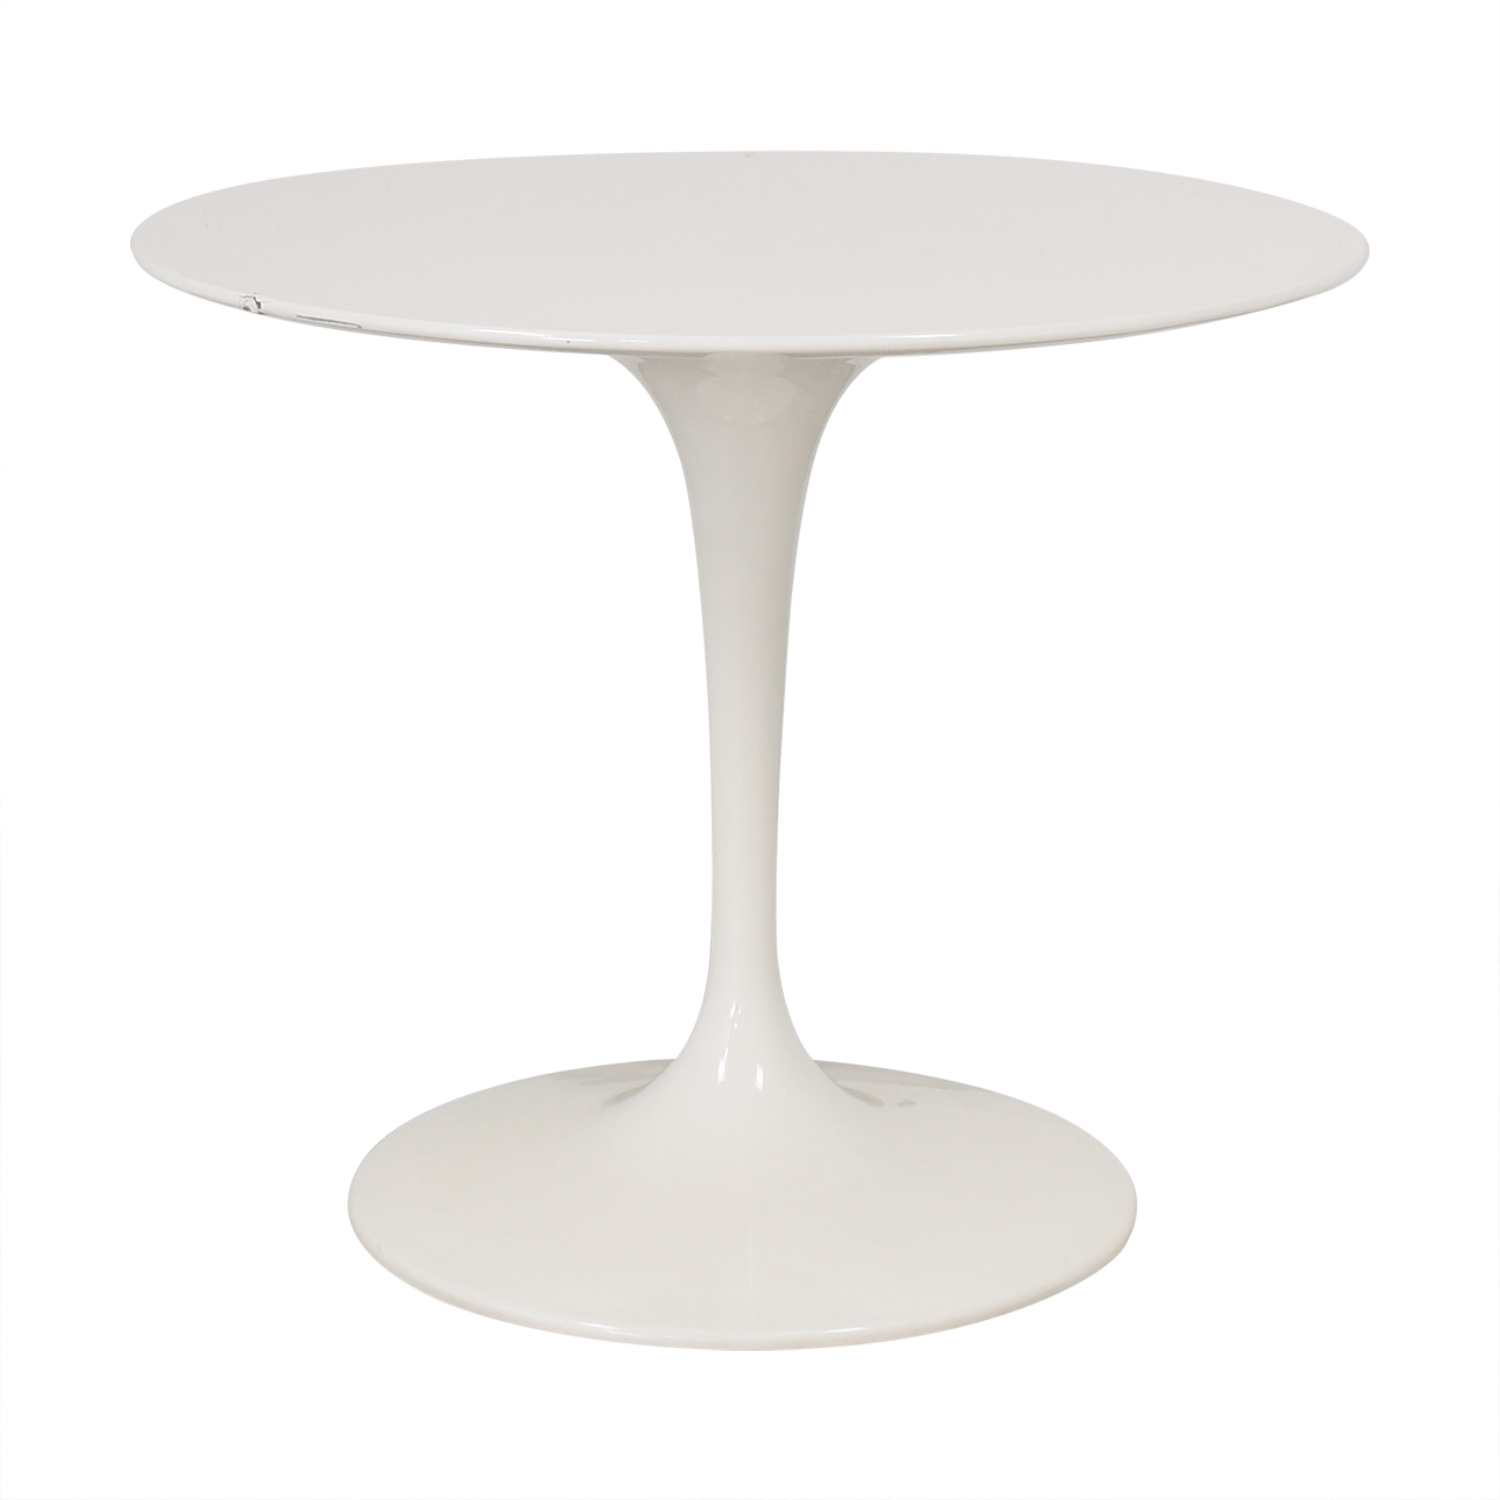 Manhattan Home Design Manhattan Home Design Tulip Dining Table second hand